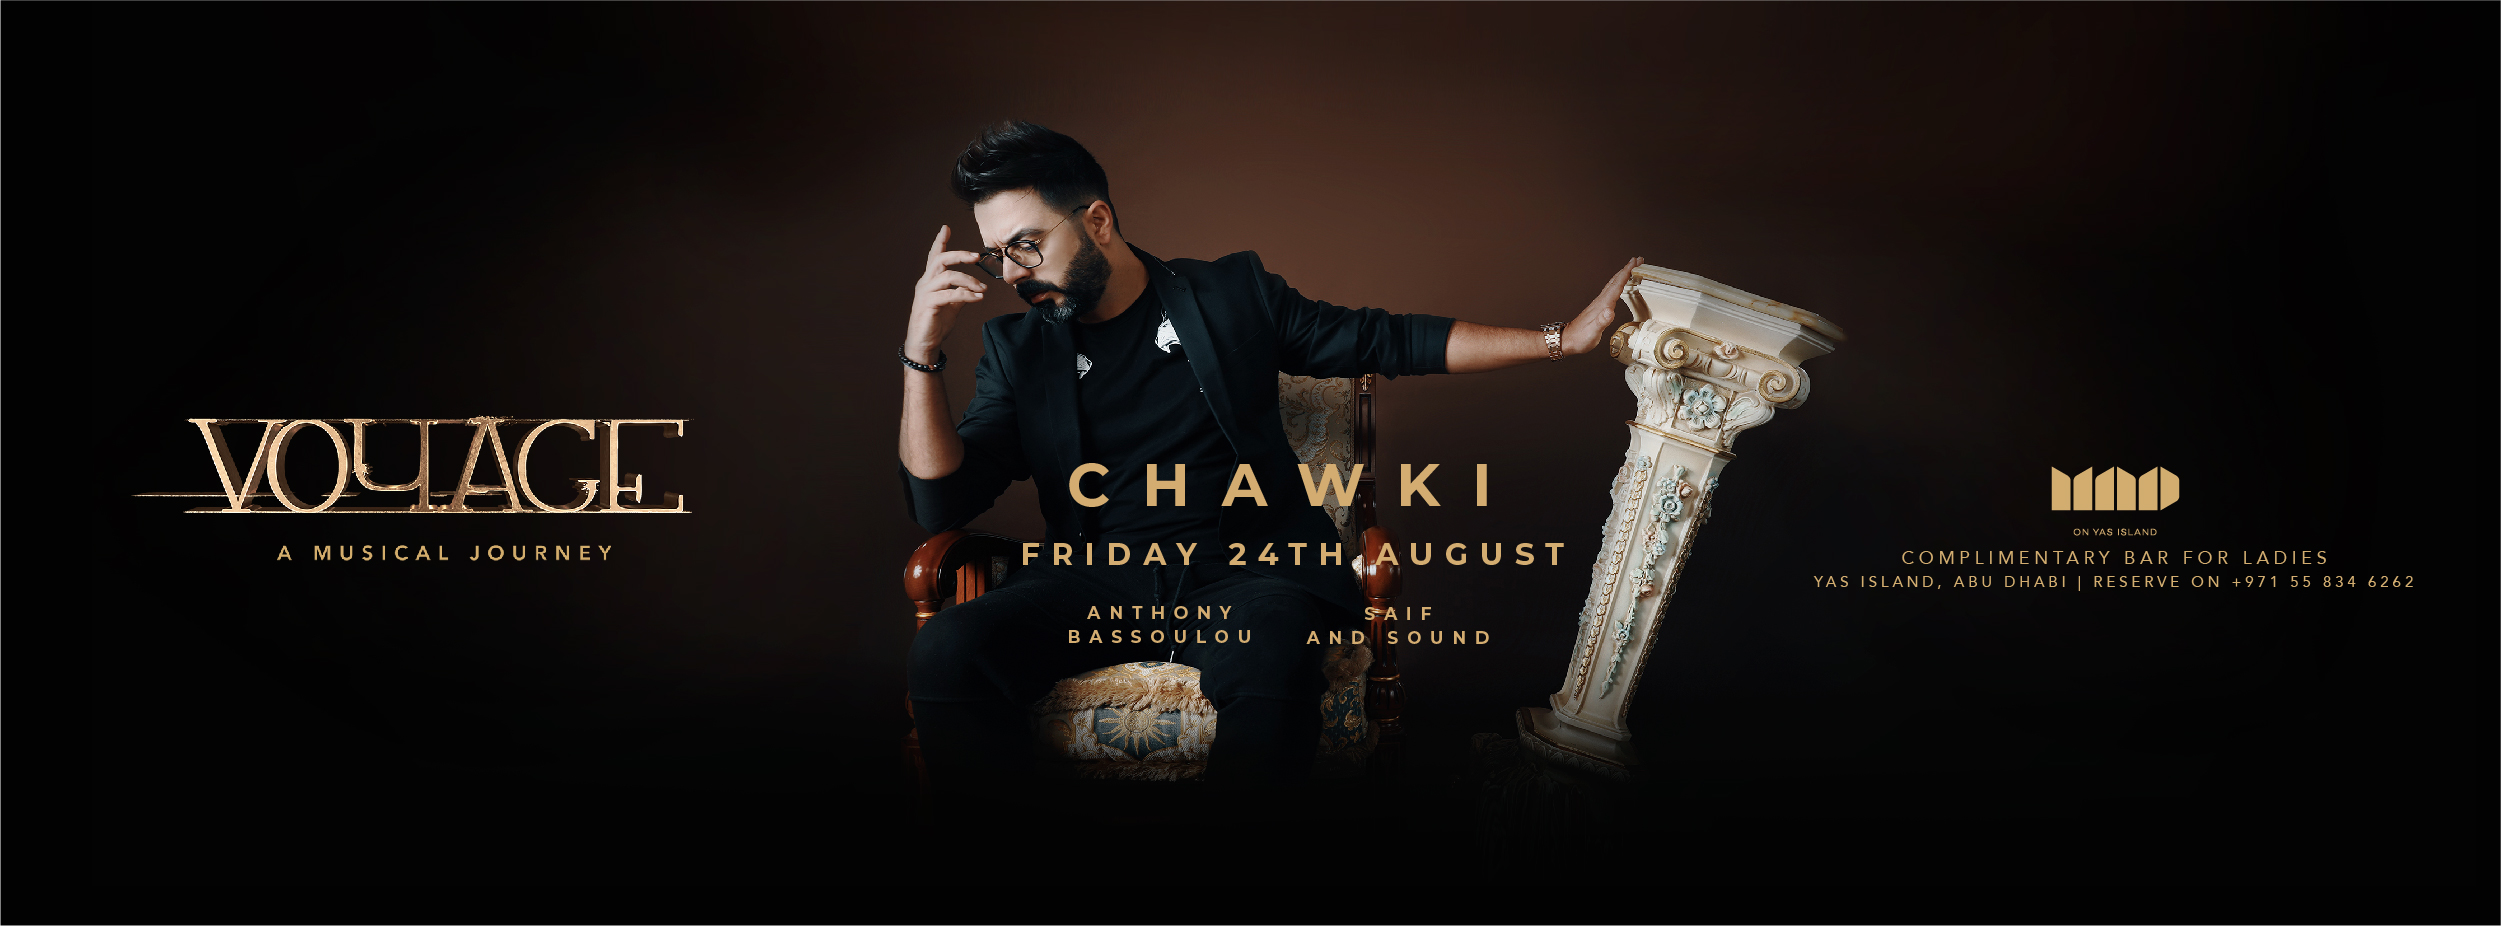 Mad Presents Chawki